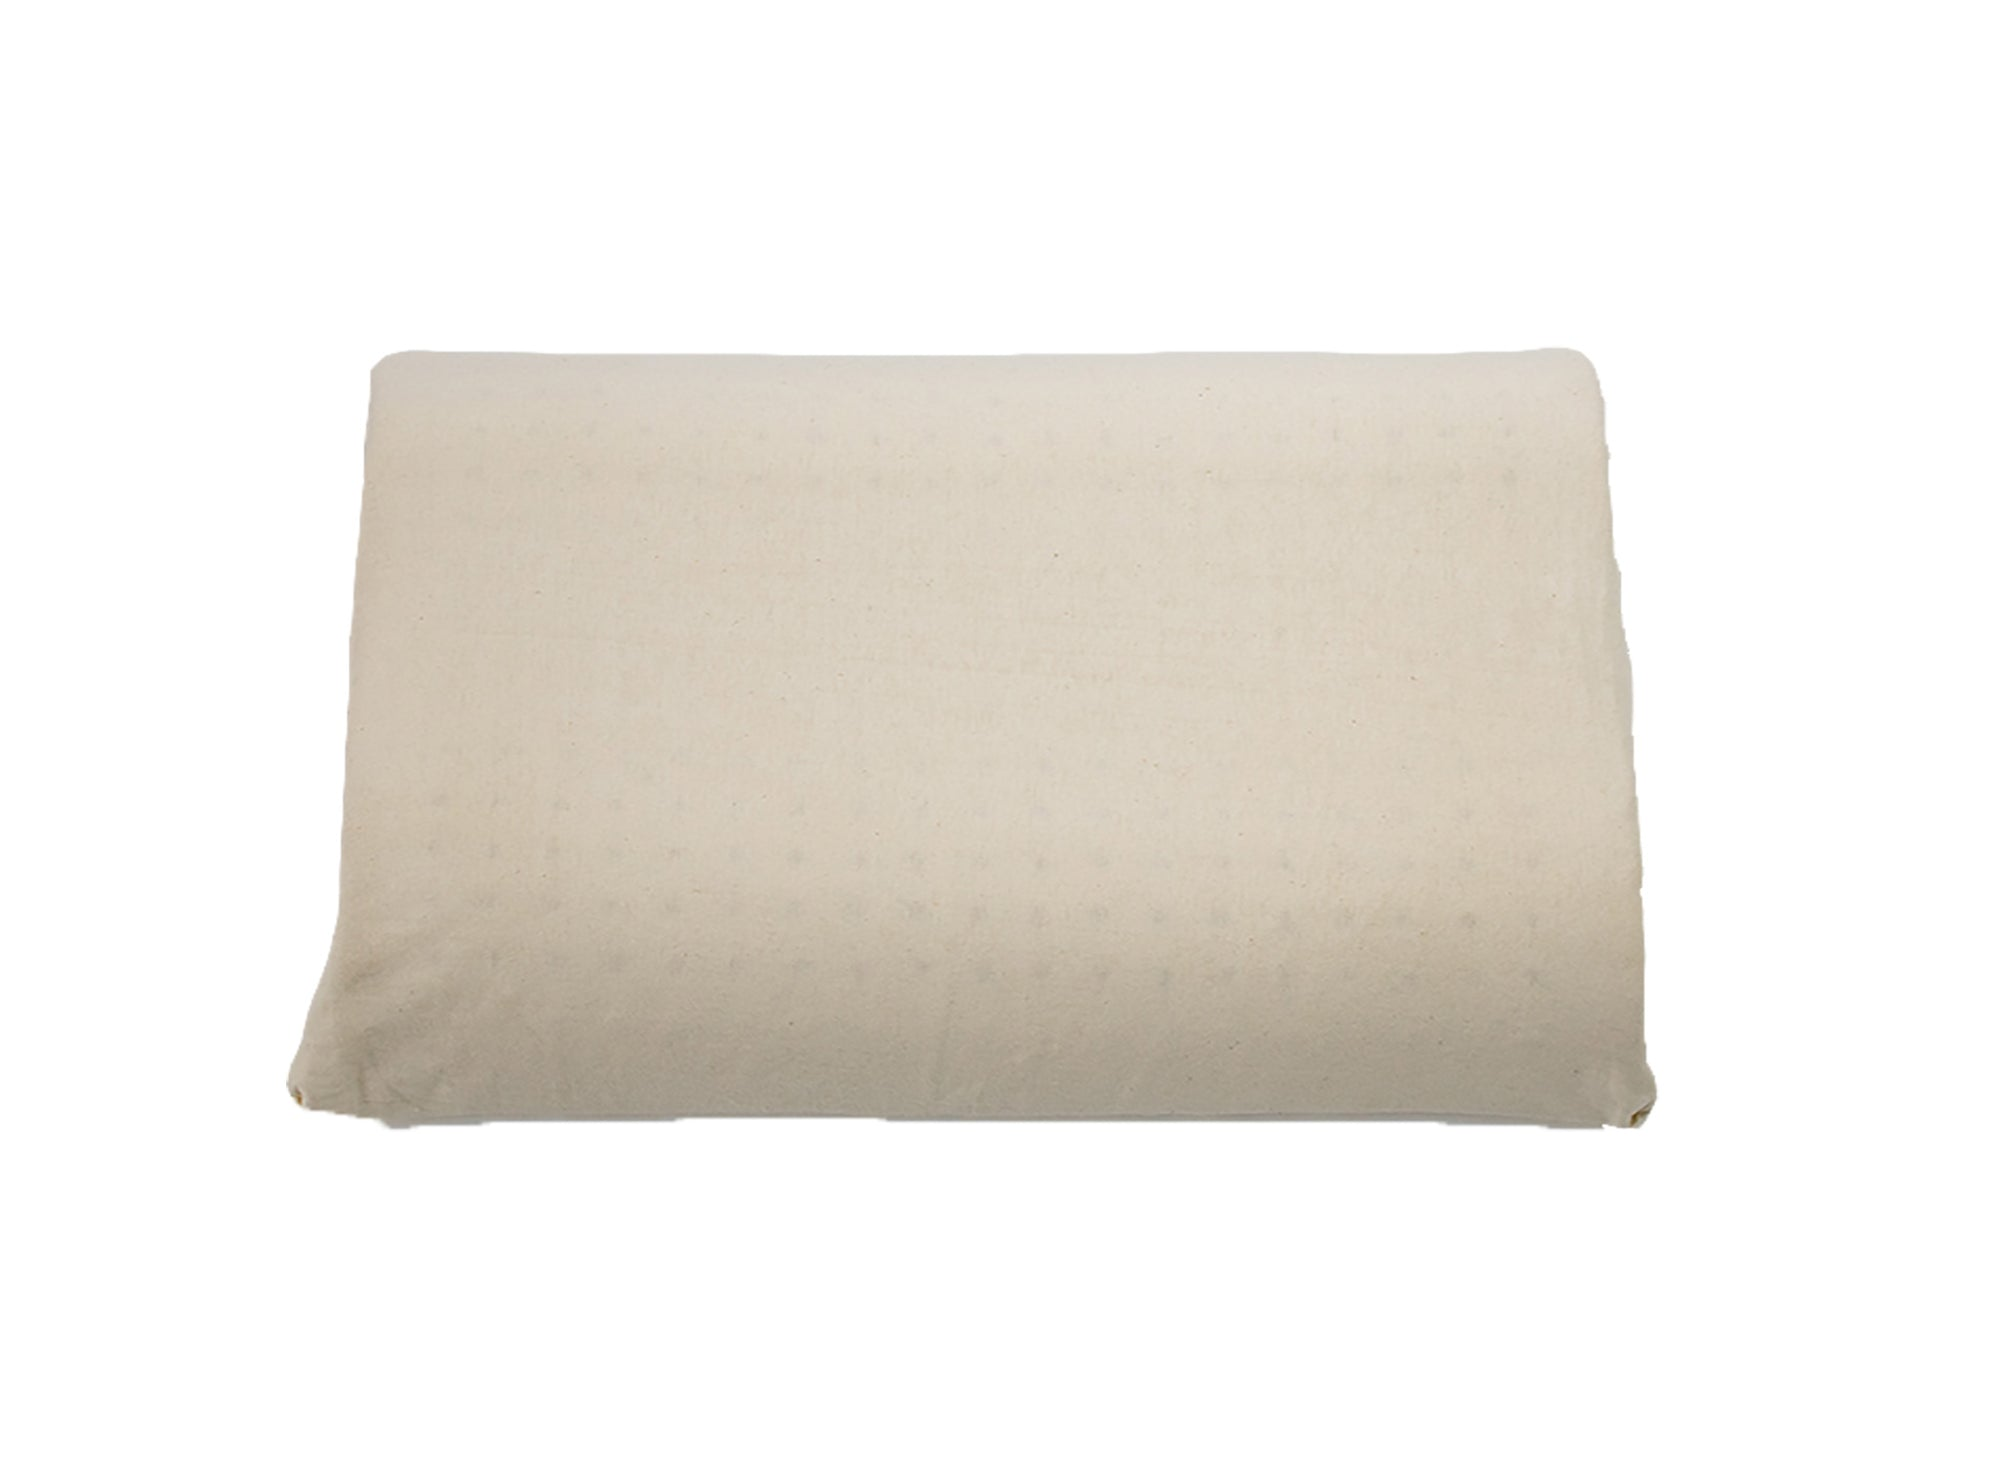 Contour Organic Latex Pillow